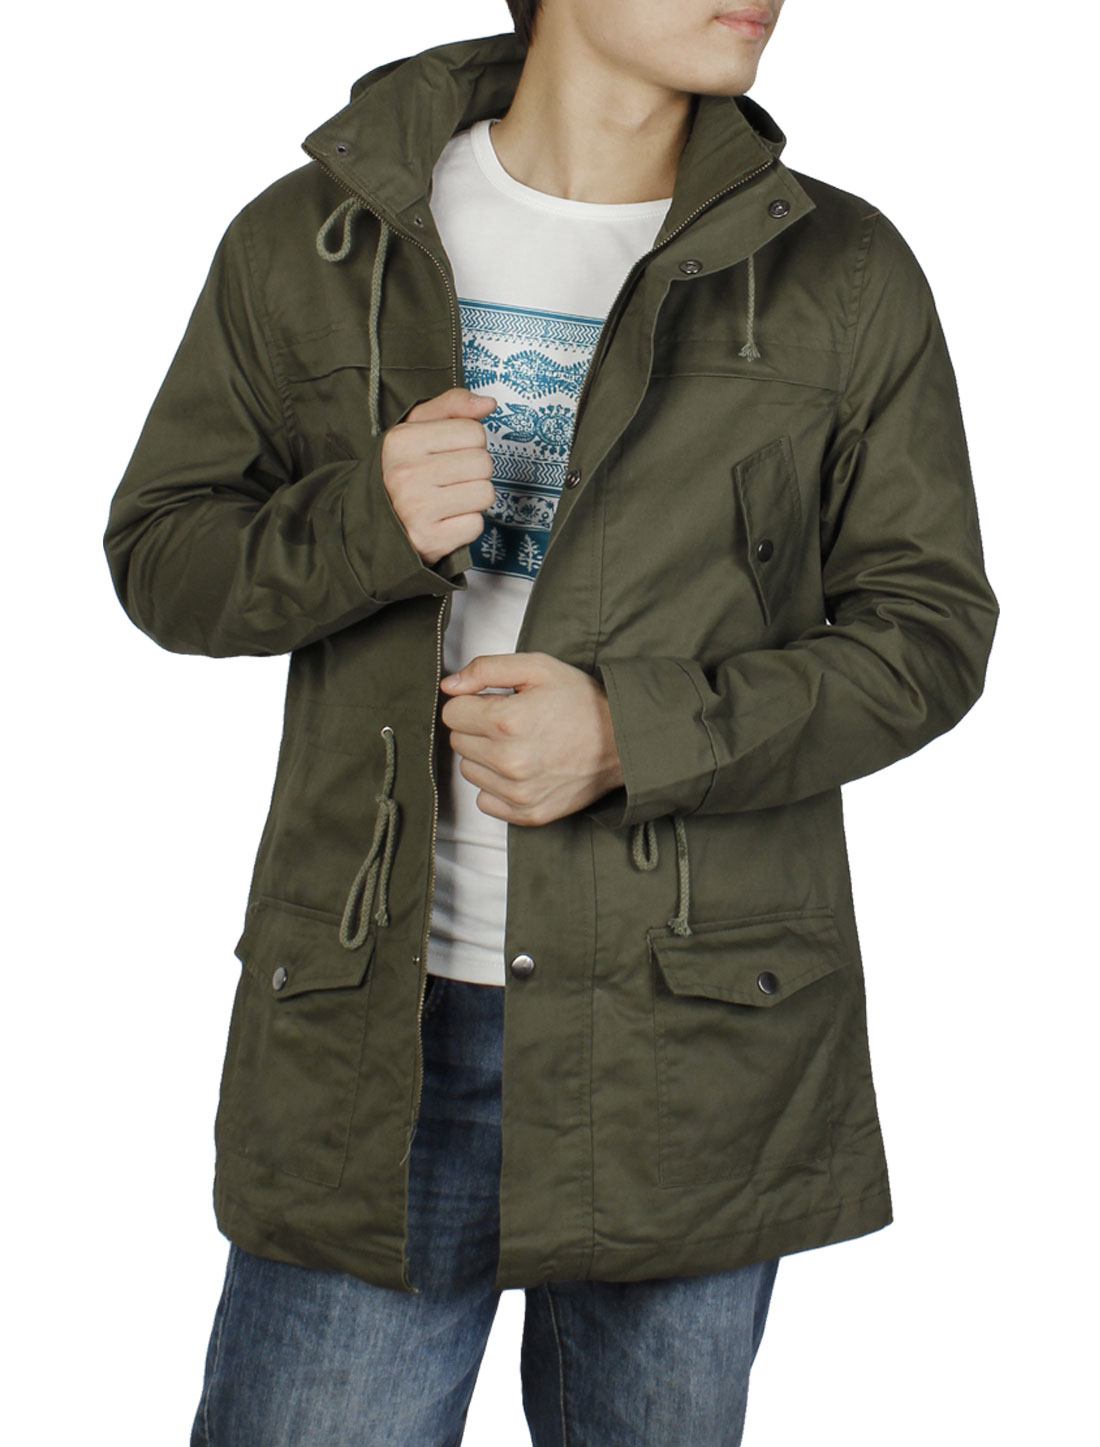 Mens Double Stand Collar Zip-Up Front Drawstring Waist Army Green Jacket M